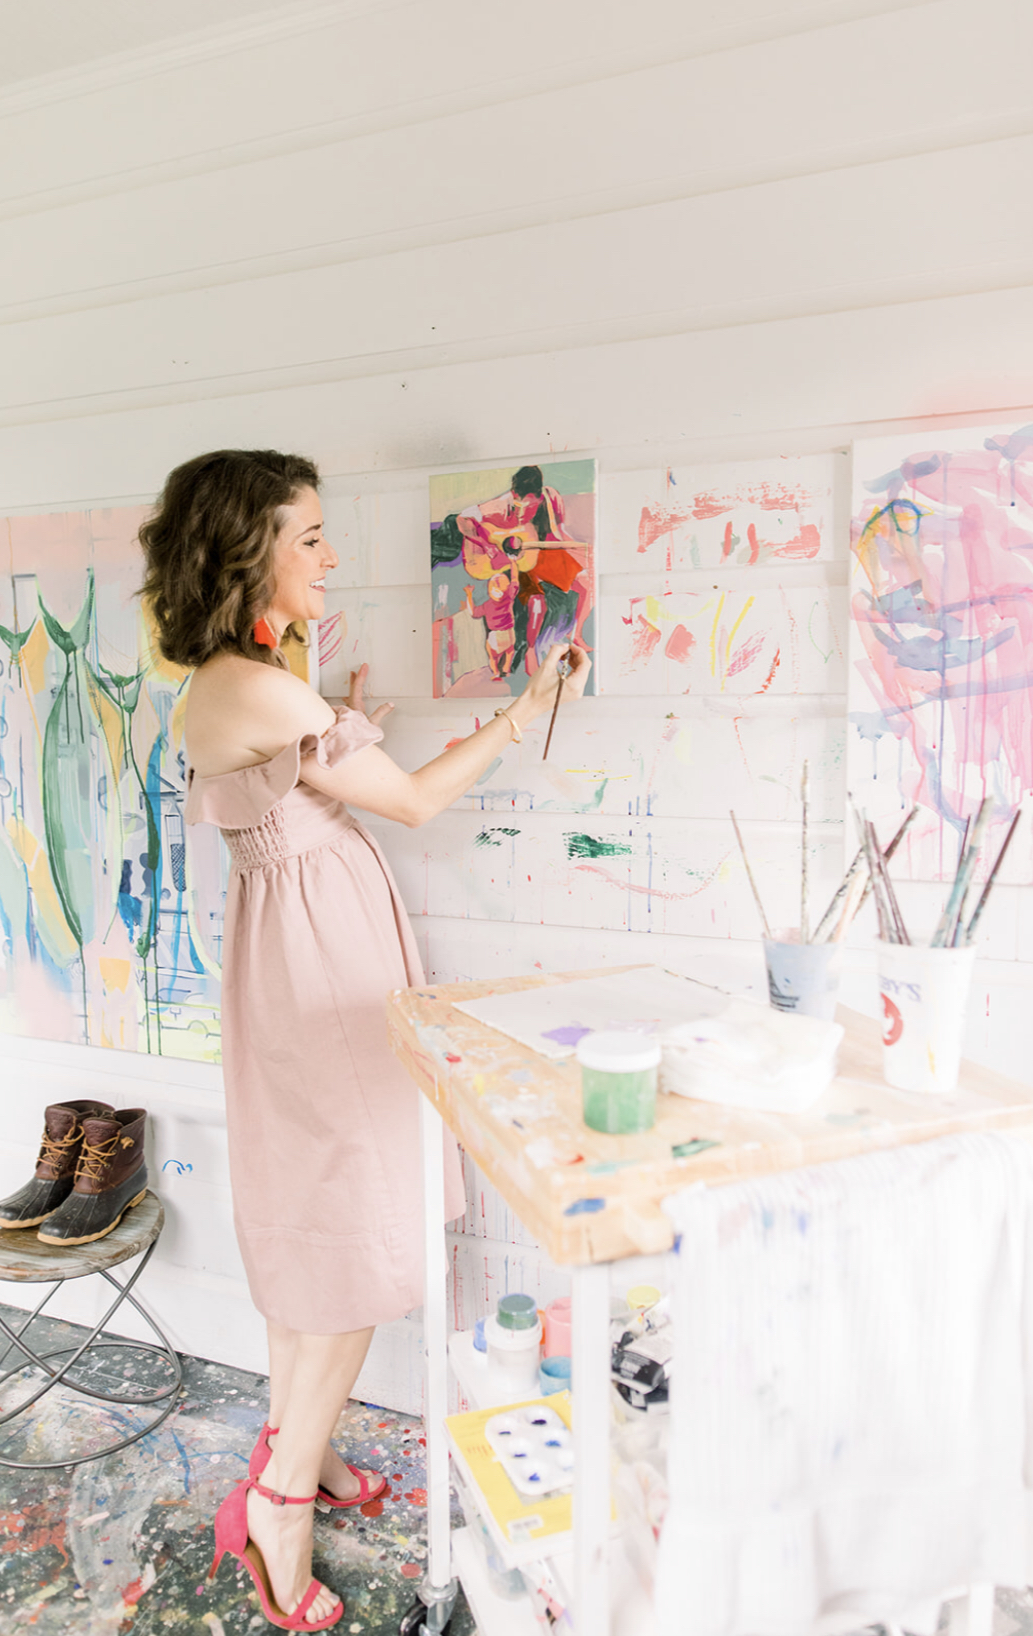 Kimberly Zukley, fine artist and fashionista (EVEN IN THE STUDIO!), painting away! Listen to her story on the Positively Creative Podcast